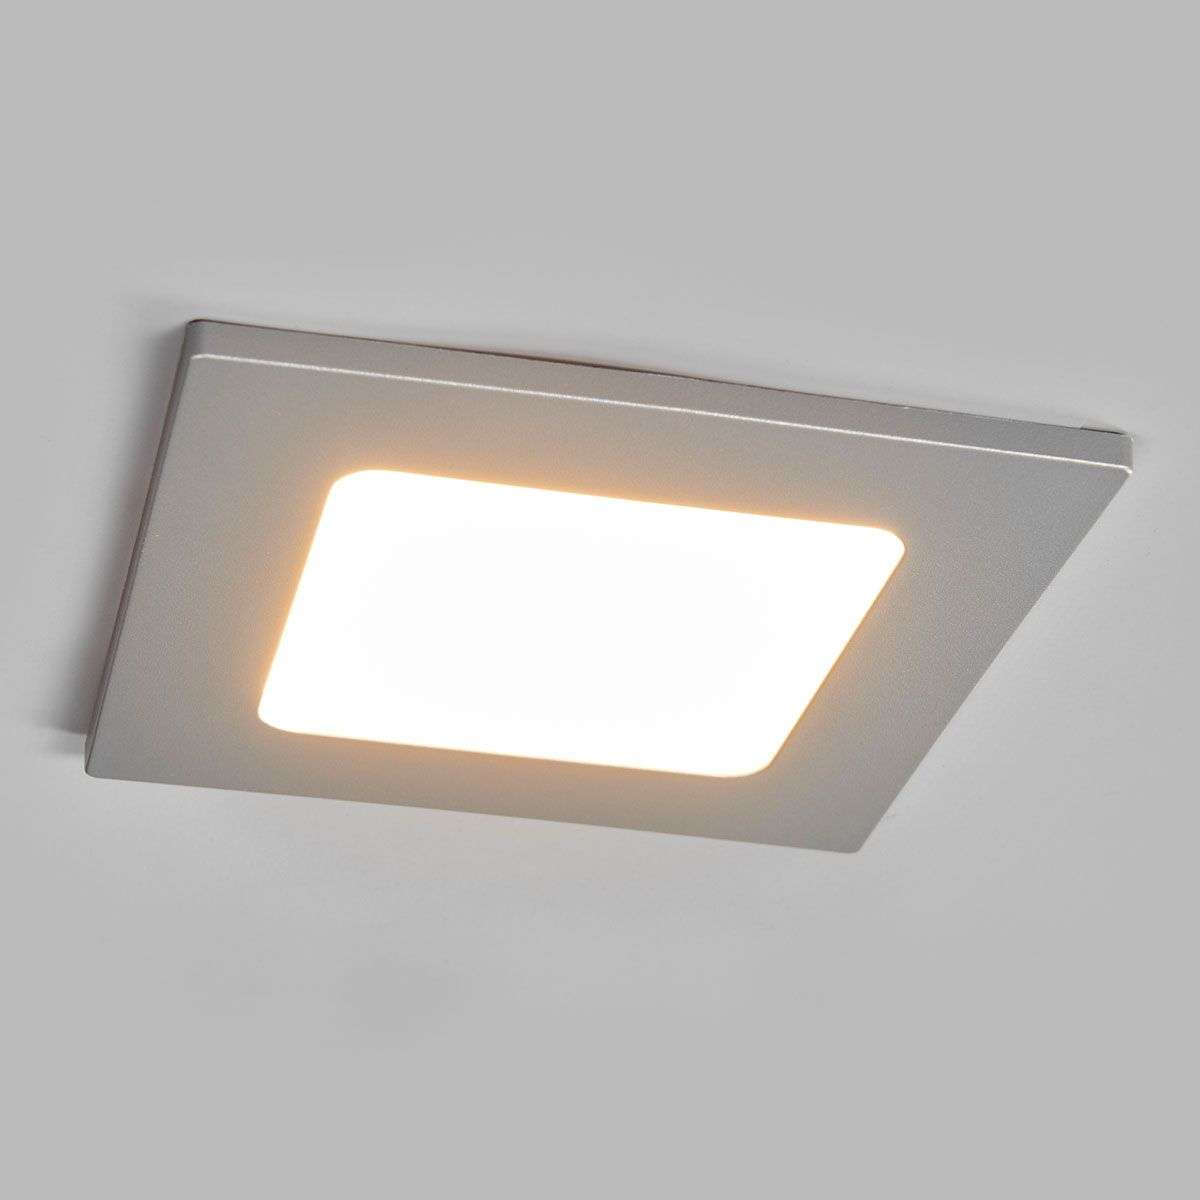 Joki square led recessed light in silver lights joki square led recessed light in silver 9978048 32 mozeypictures Gallery